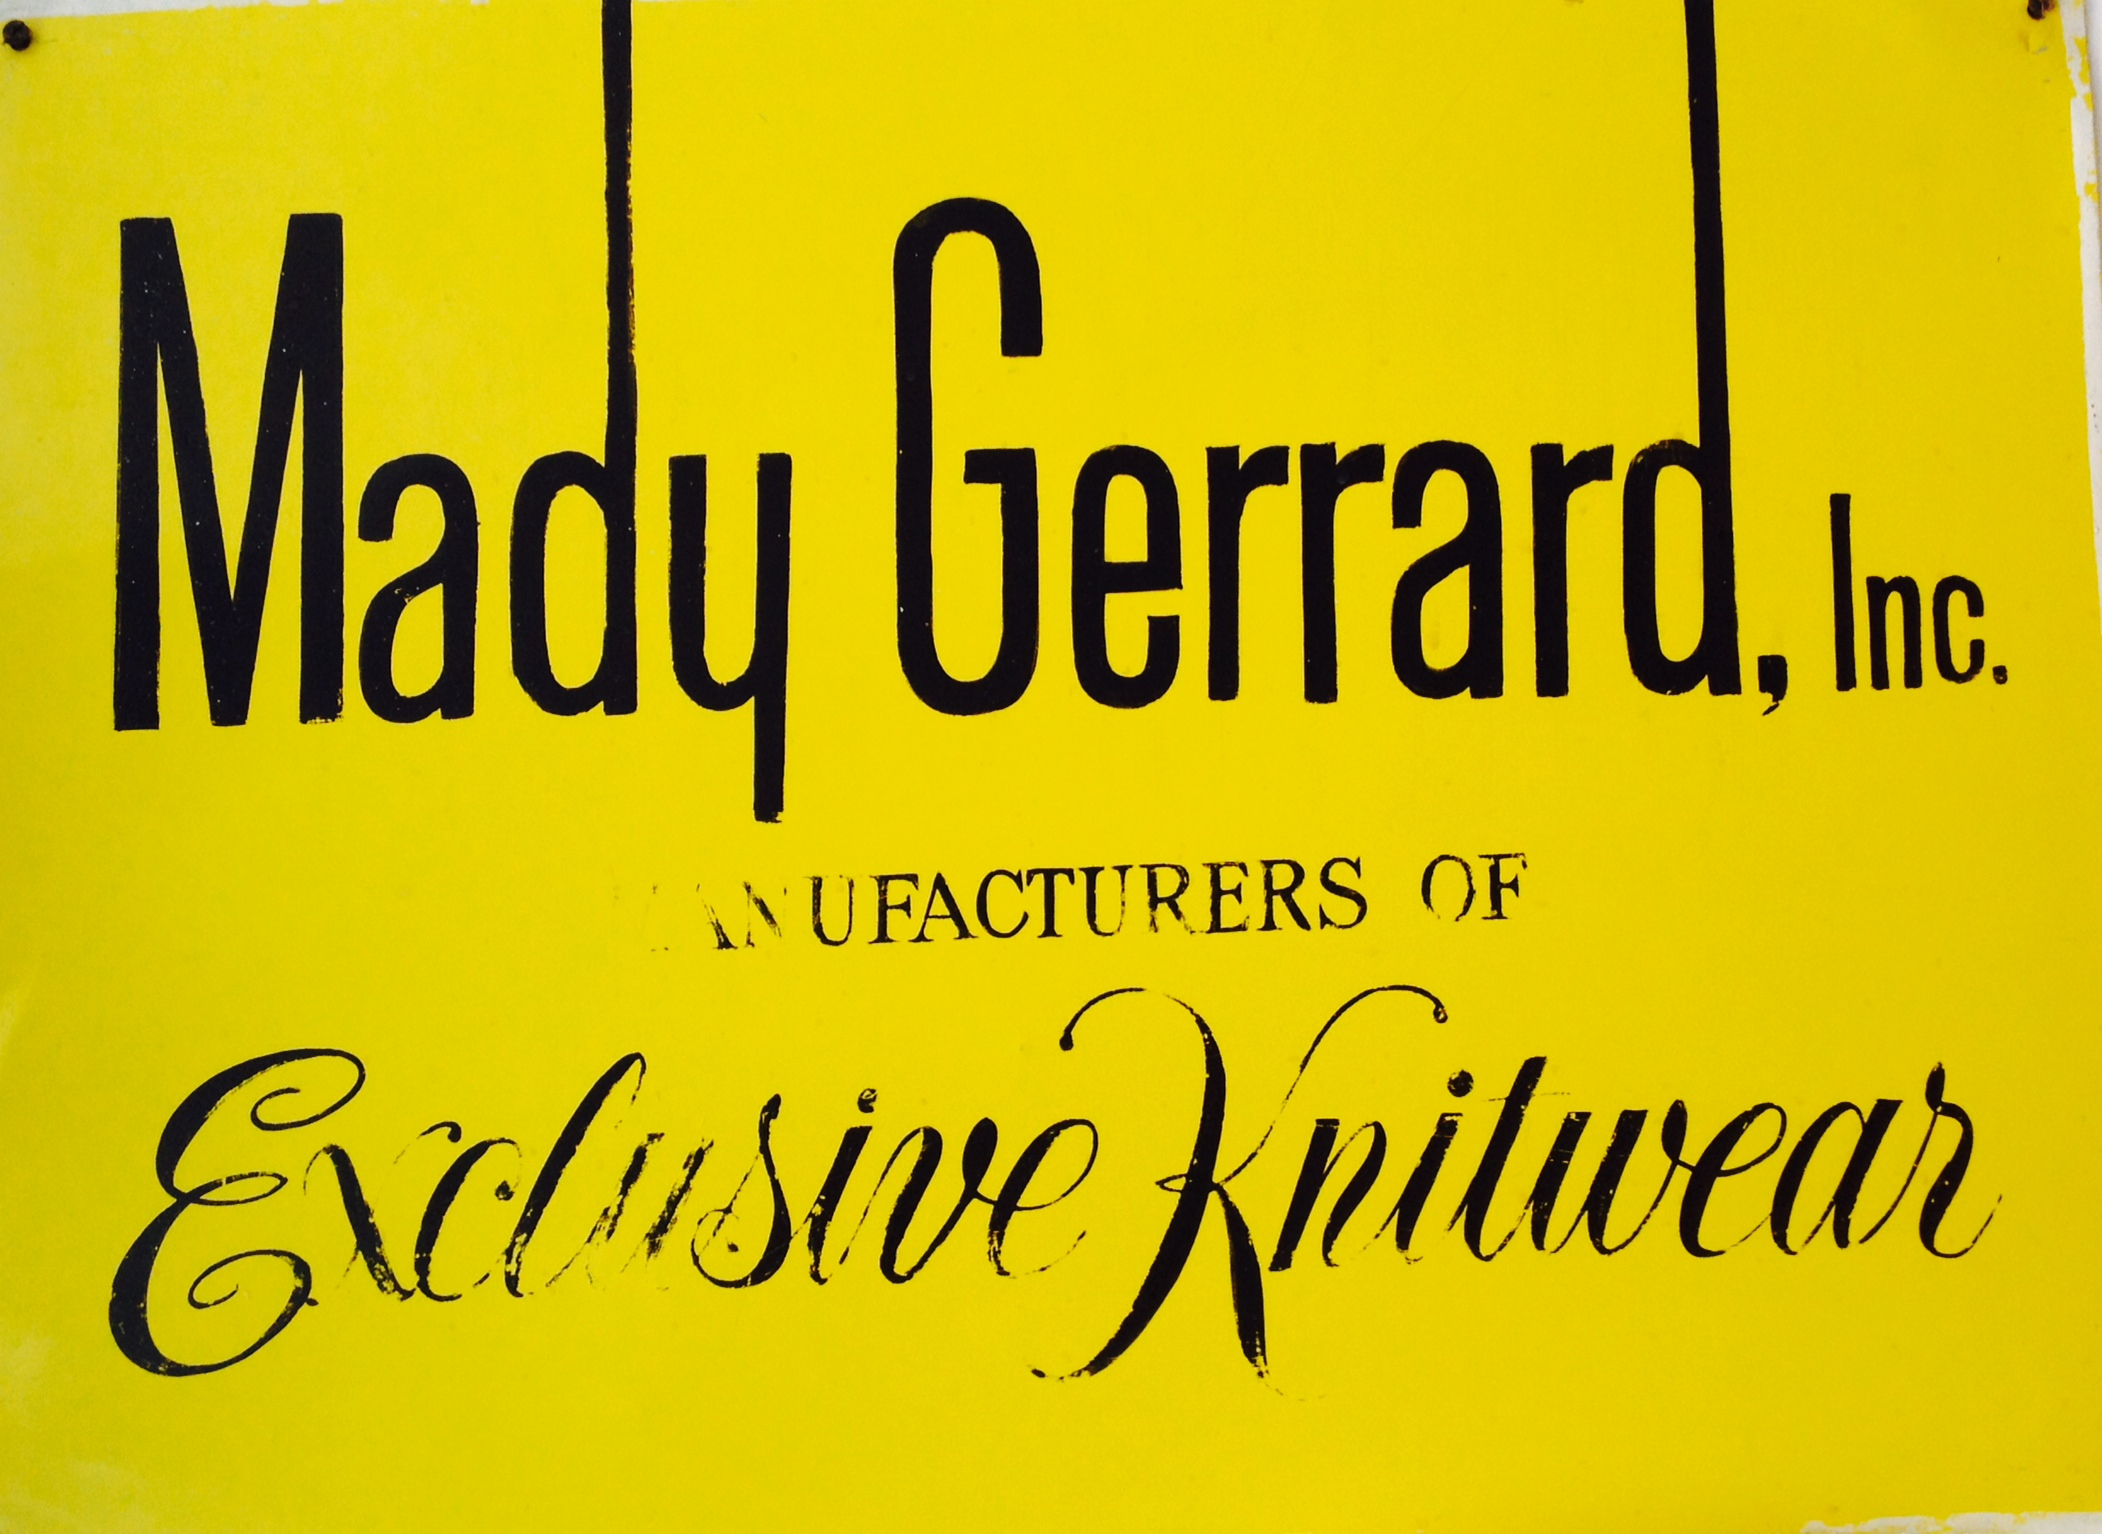 Mady Gerrard Fashion